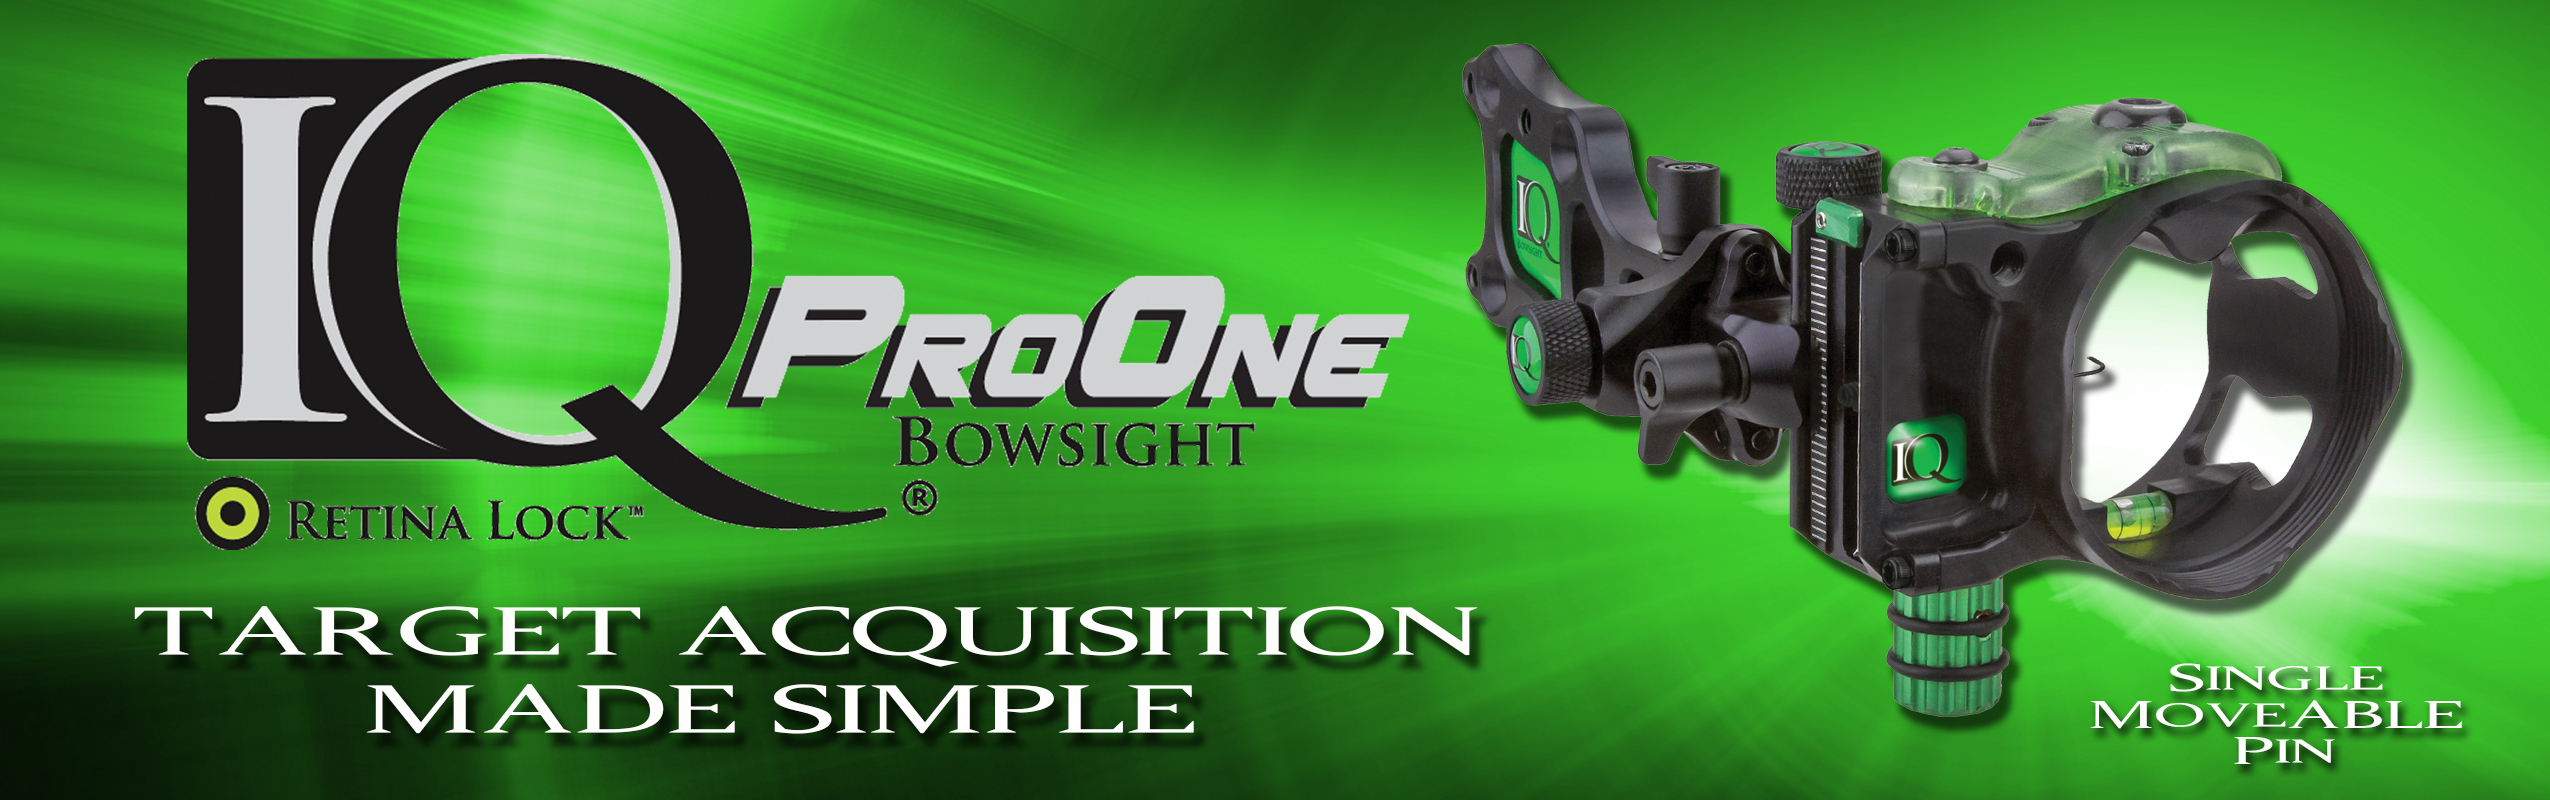 iq-pro-one-may-slider.jpg